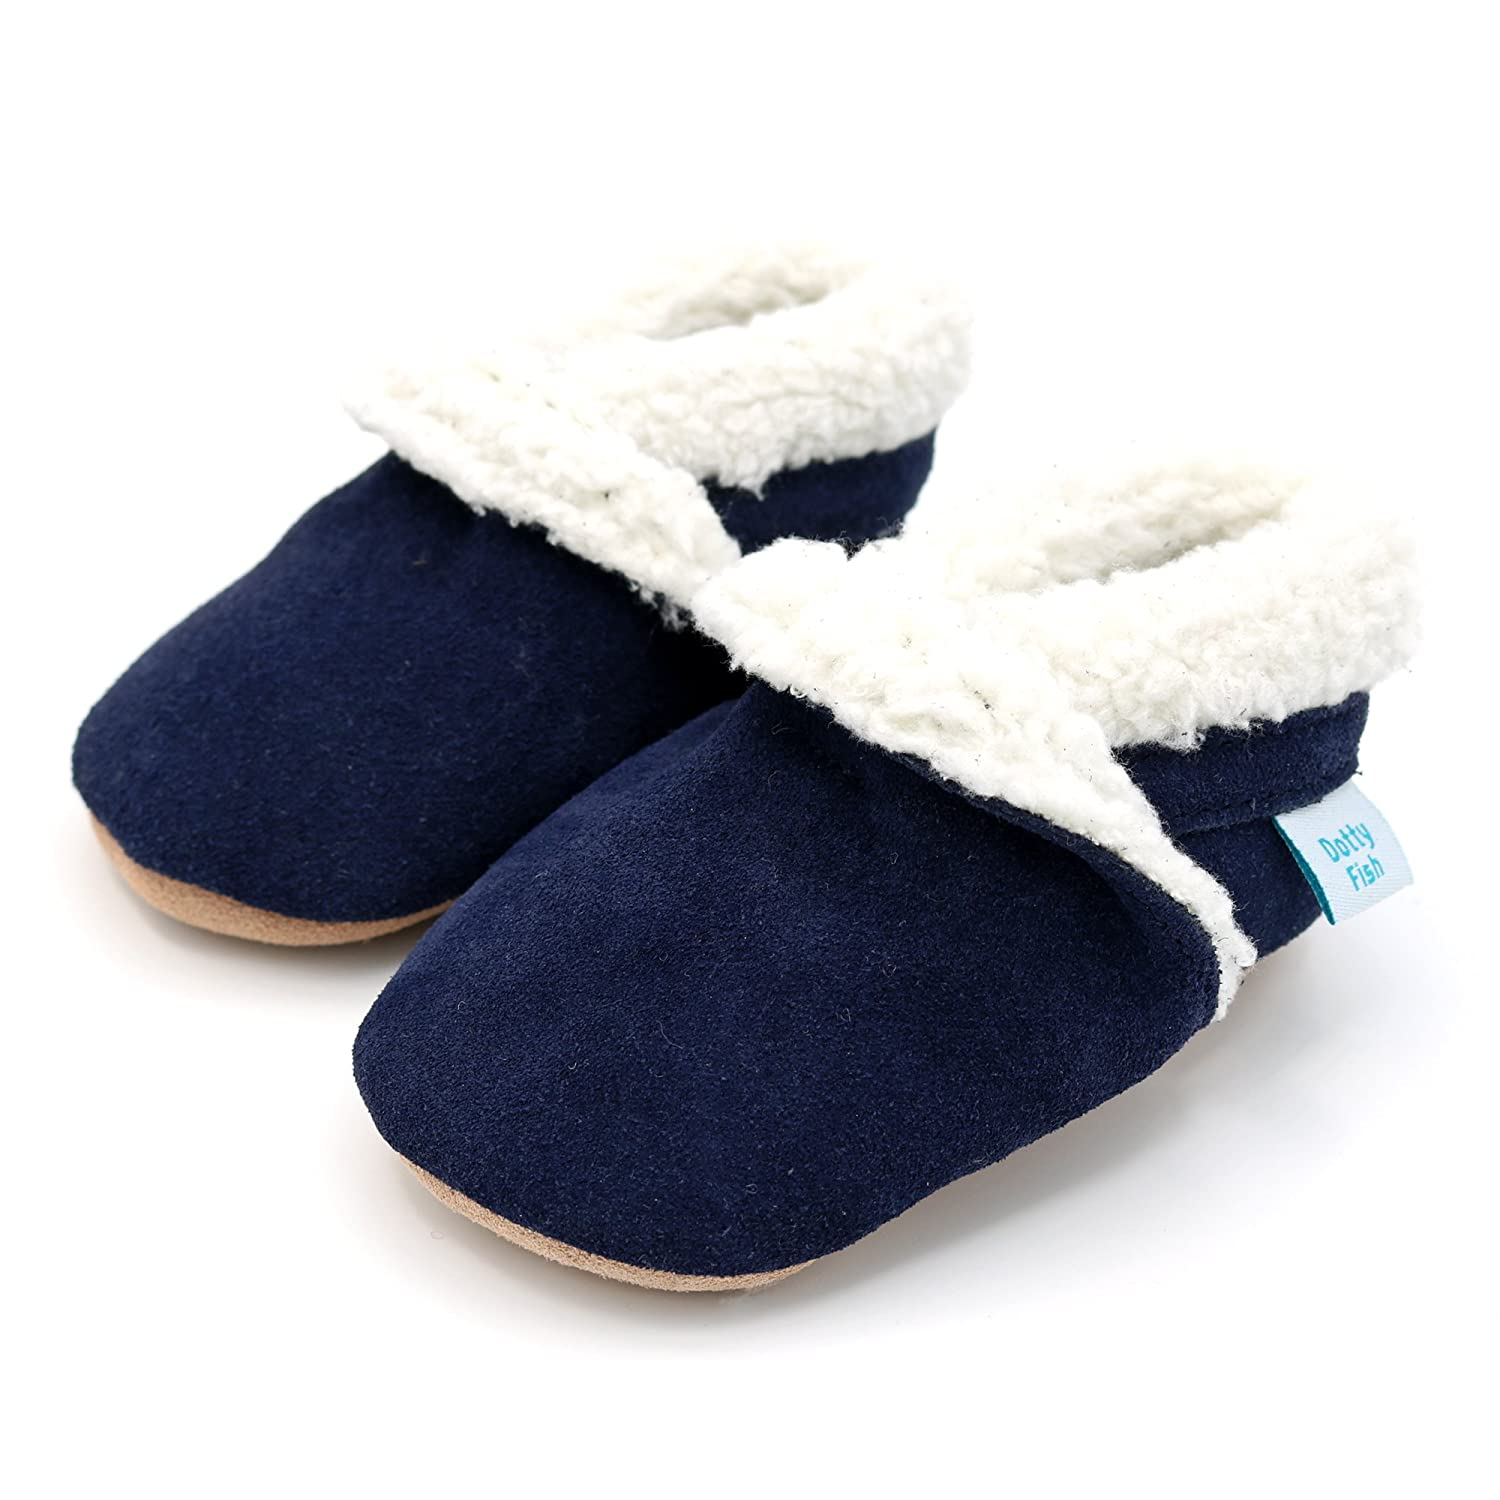 9919fd3fa79f2 Dotty Fish Suede Baby Slippers. Fleece Lined. 0-6 Months to 4-5 Years.  Navy, Soft Grey, Pink and Tan. Non-Slip Soft Sole. Toddler. Young Kids.